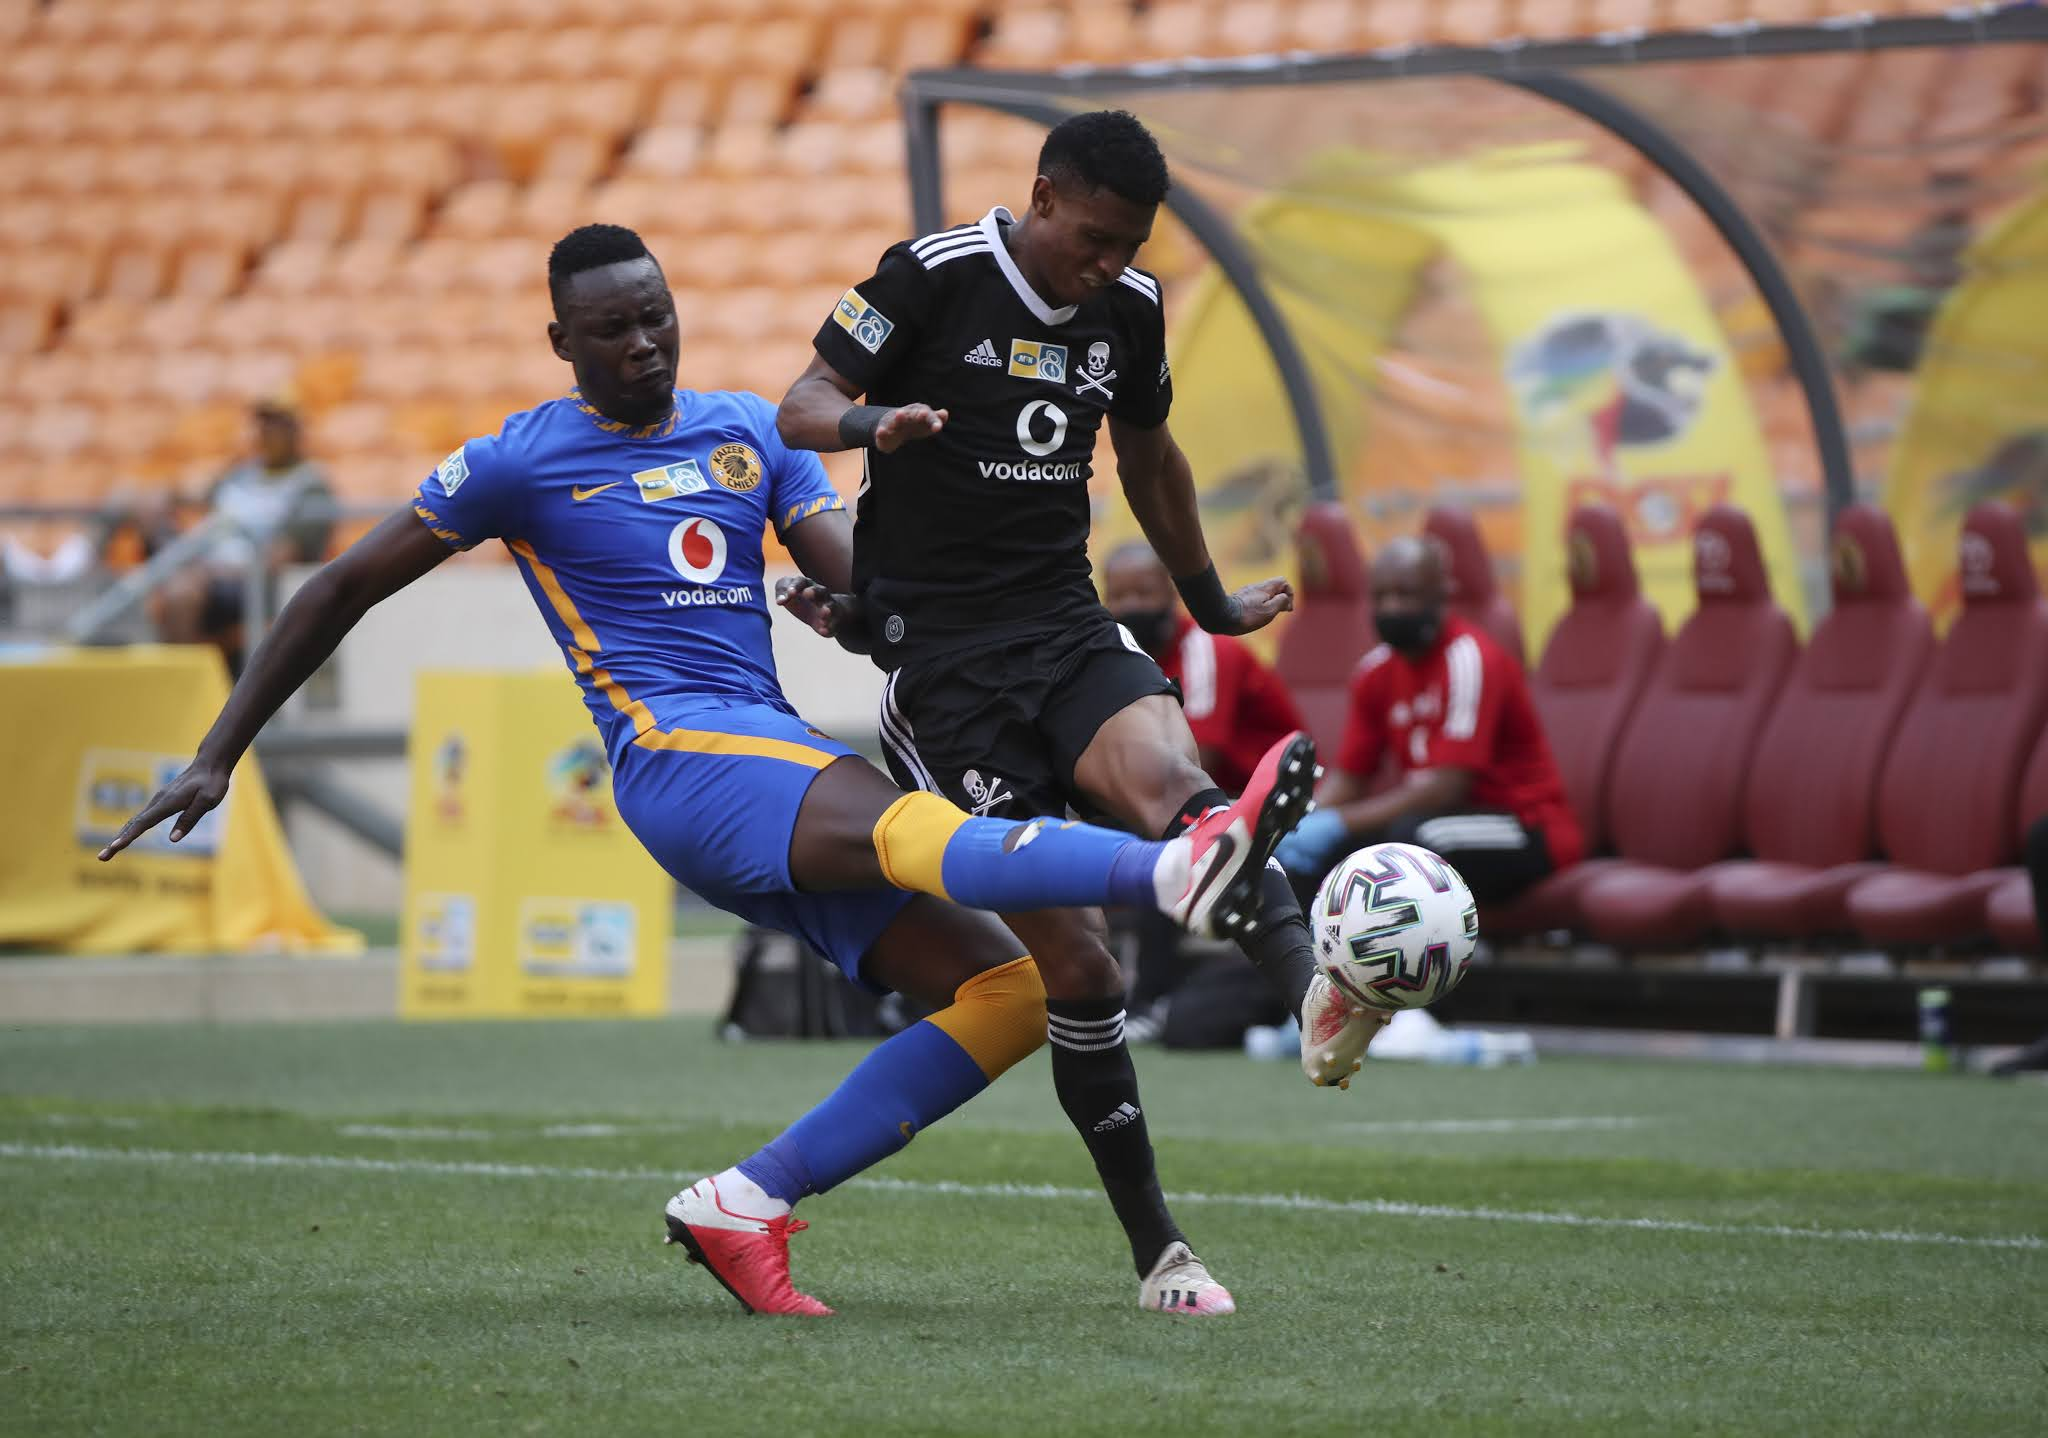 Eric Mathoho and Vincent Pule in action during the previous Soweto Derby